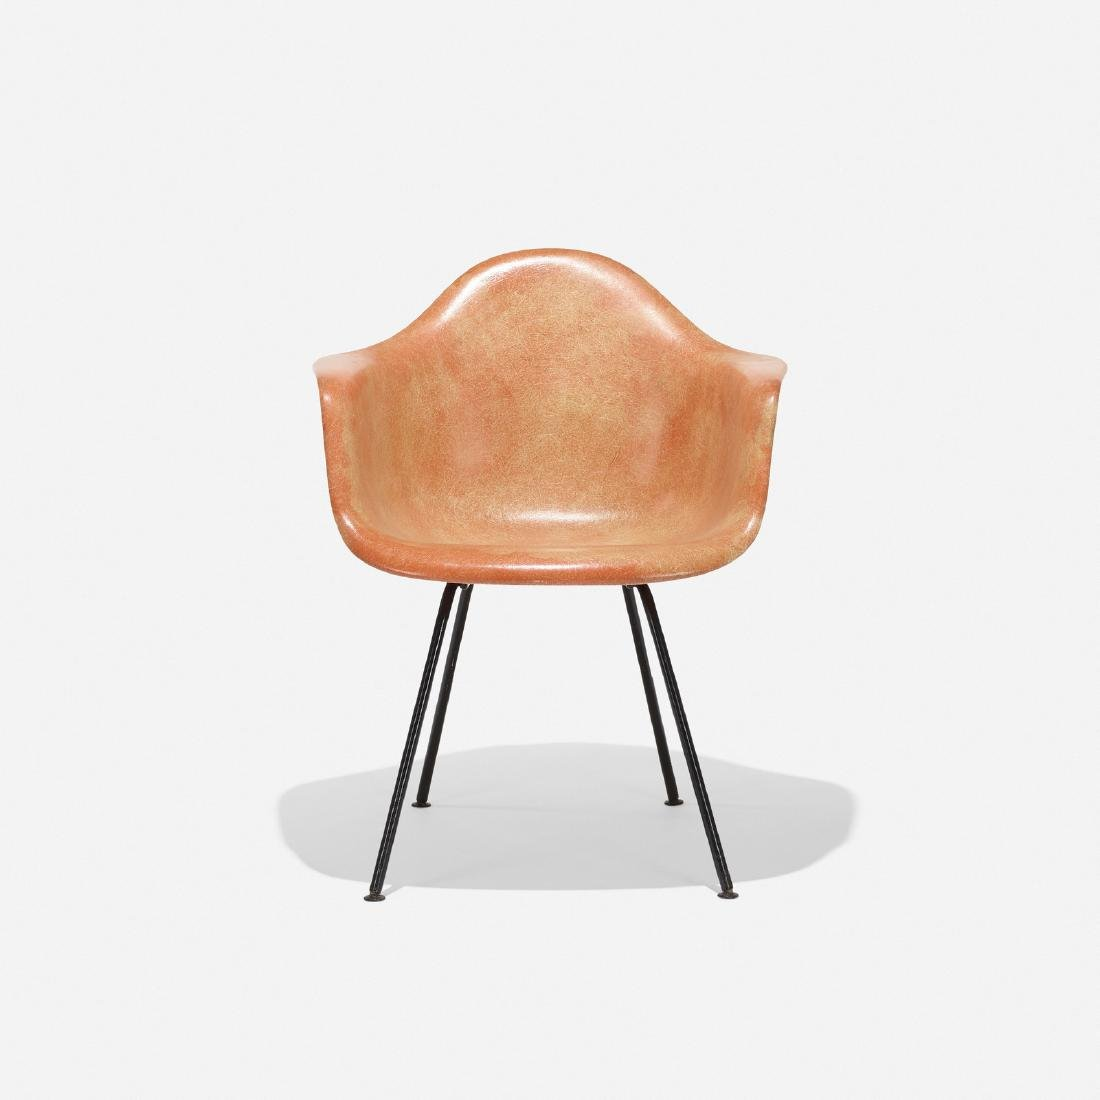 Charles and Ray Eames, DAX - 2